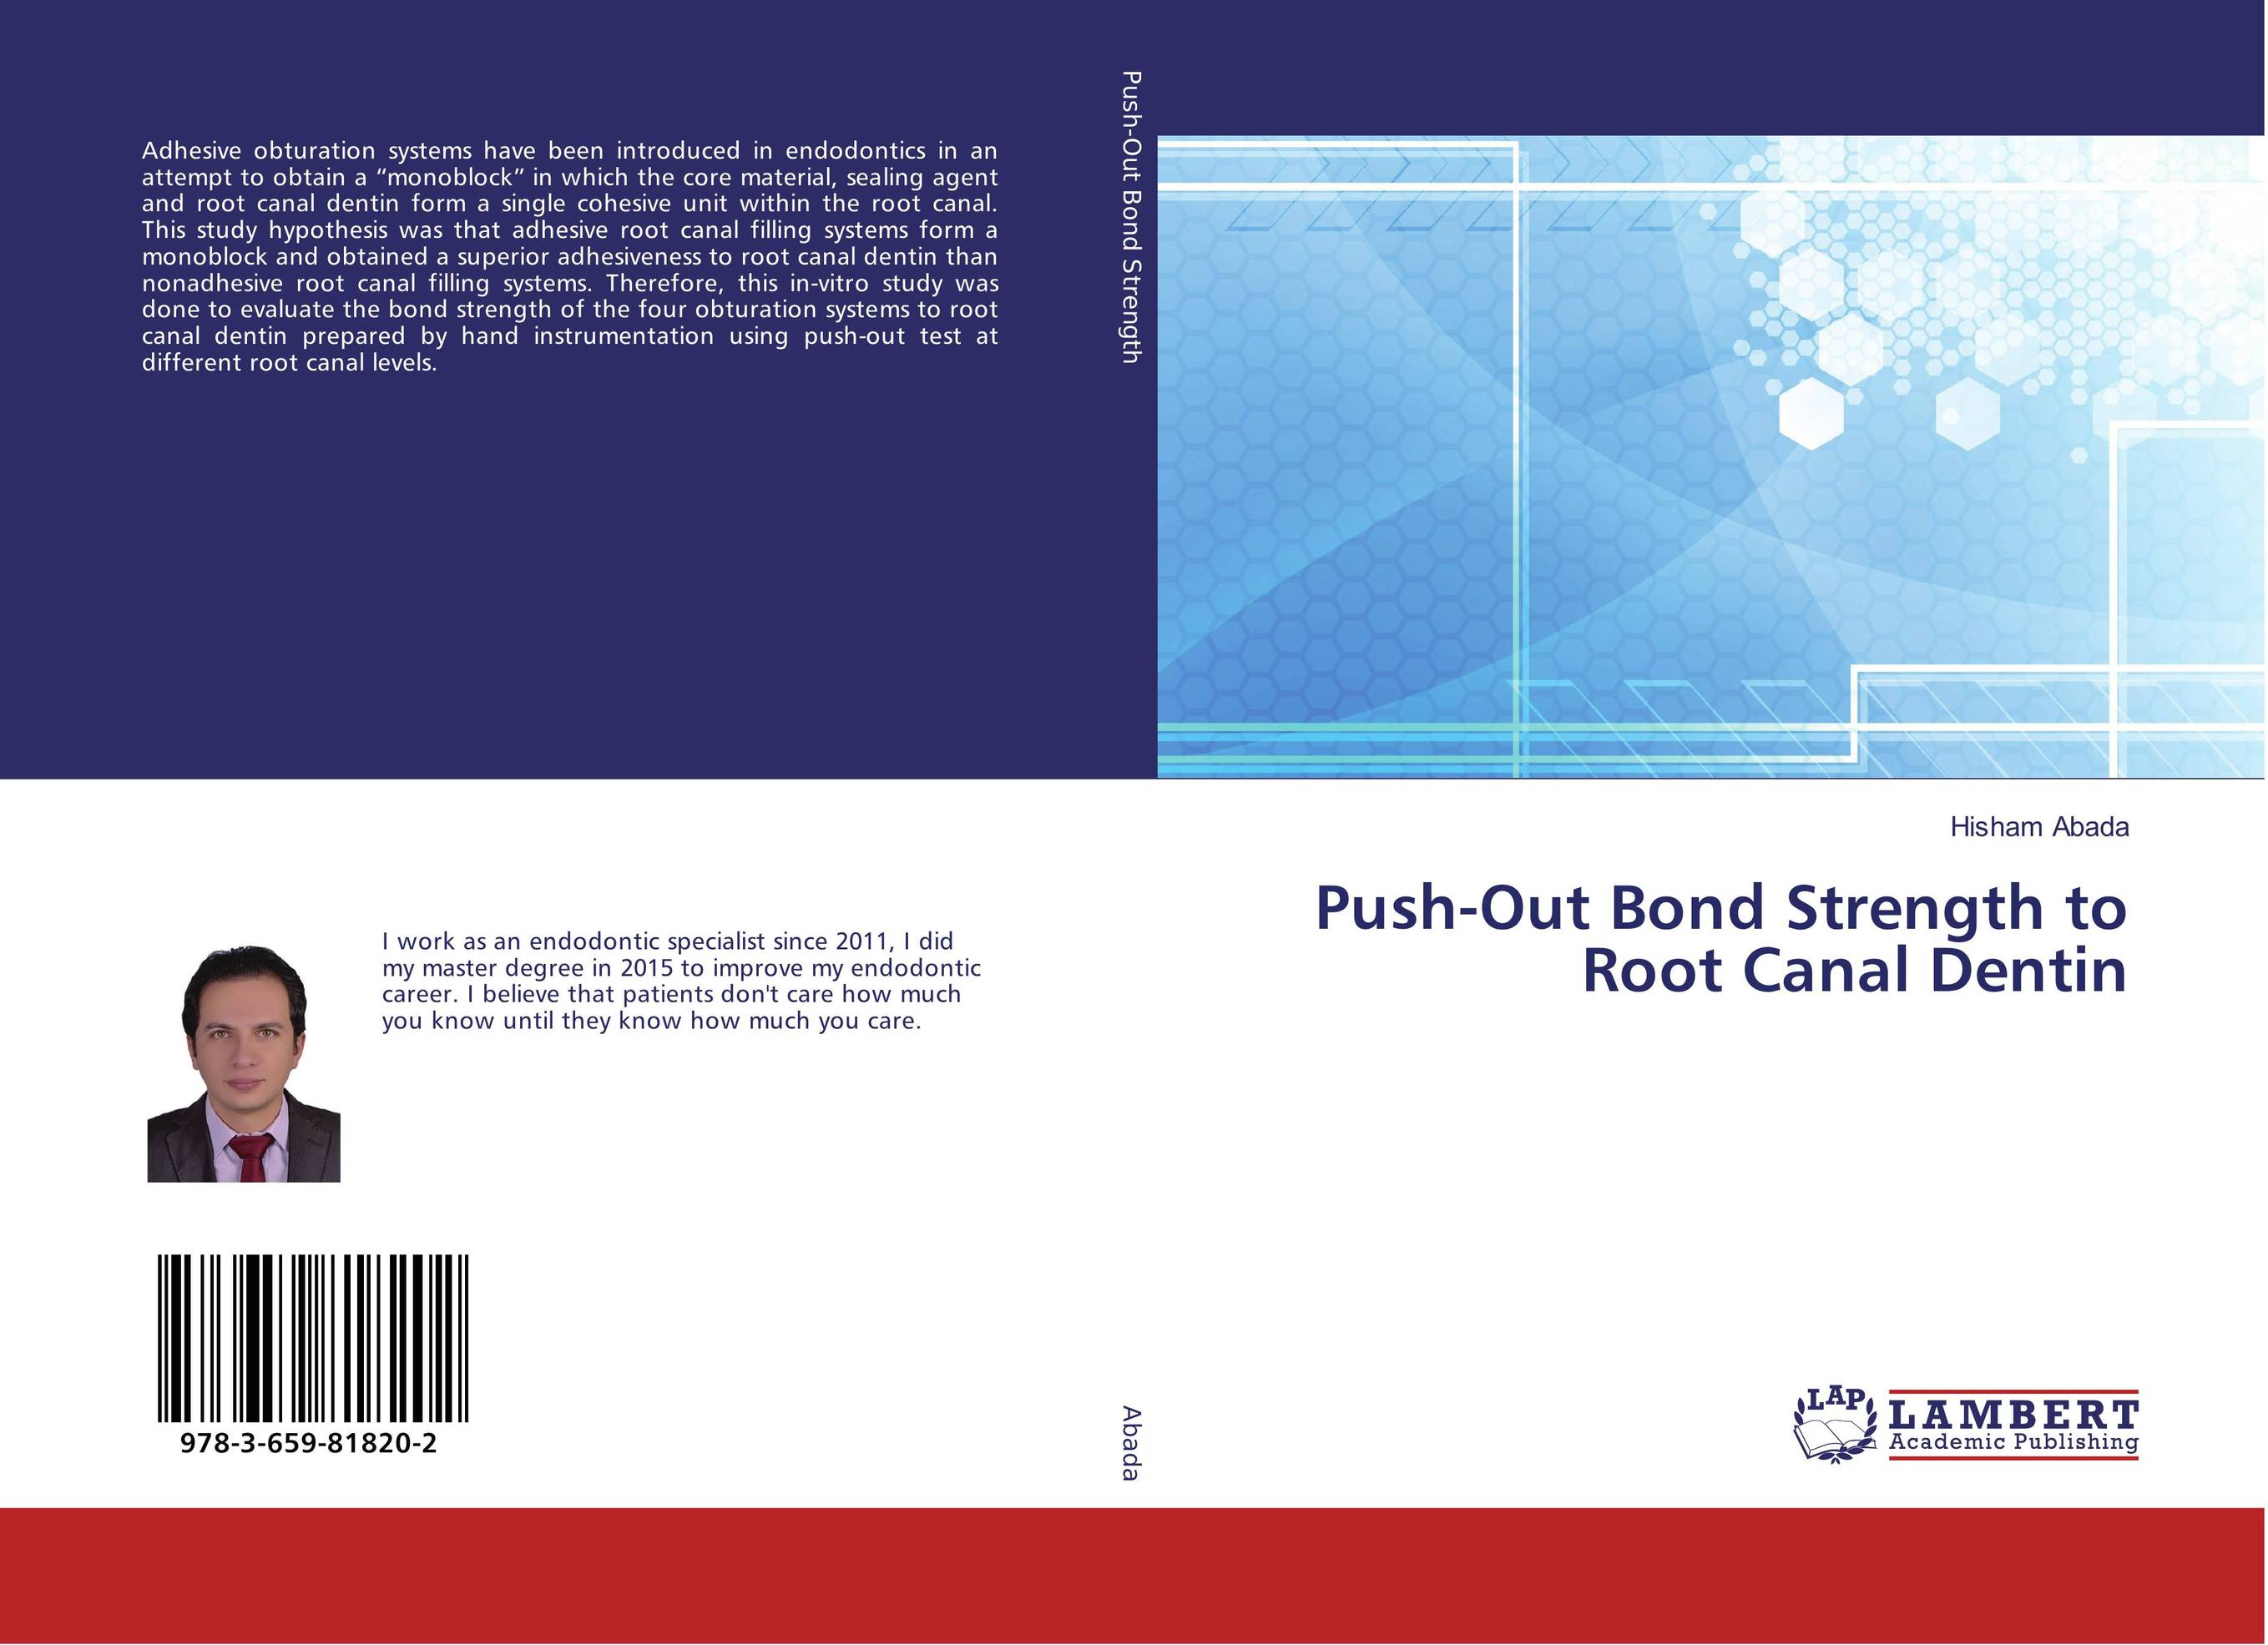 Push-Out Bond Strength to Root Canal Dentin recent advances in root canal irrigation techniques